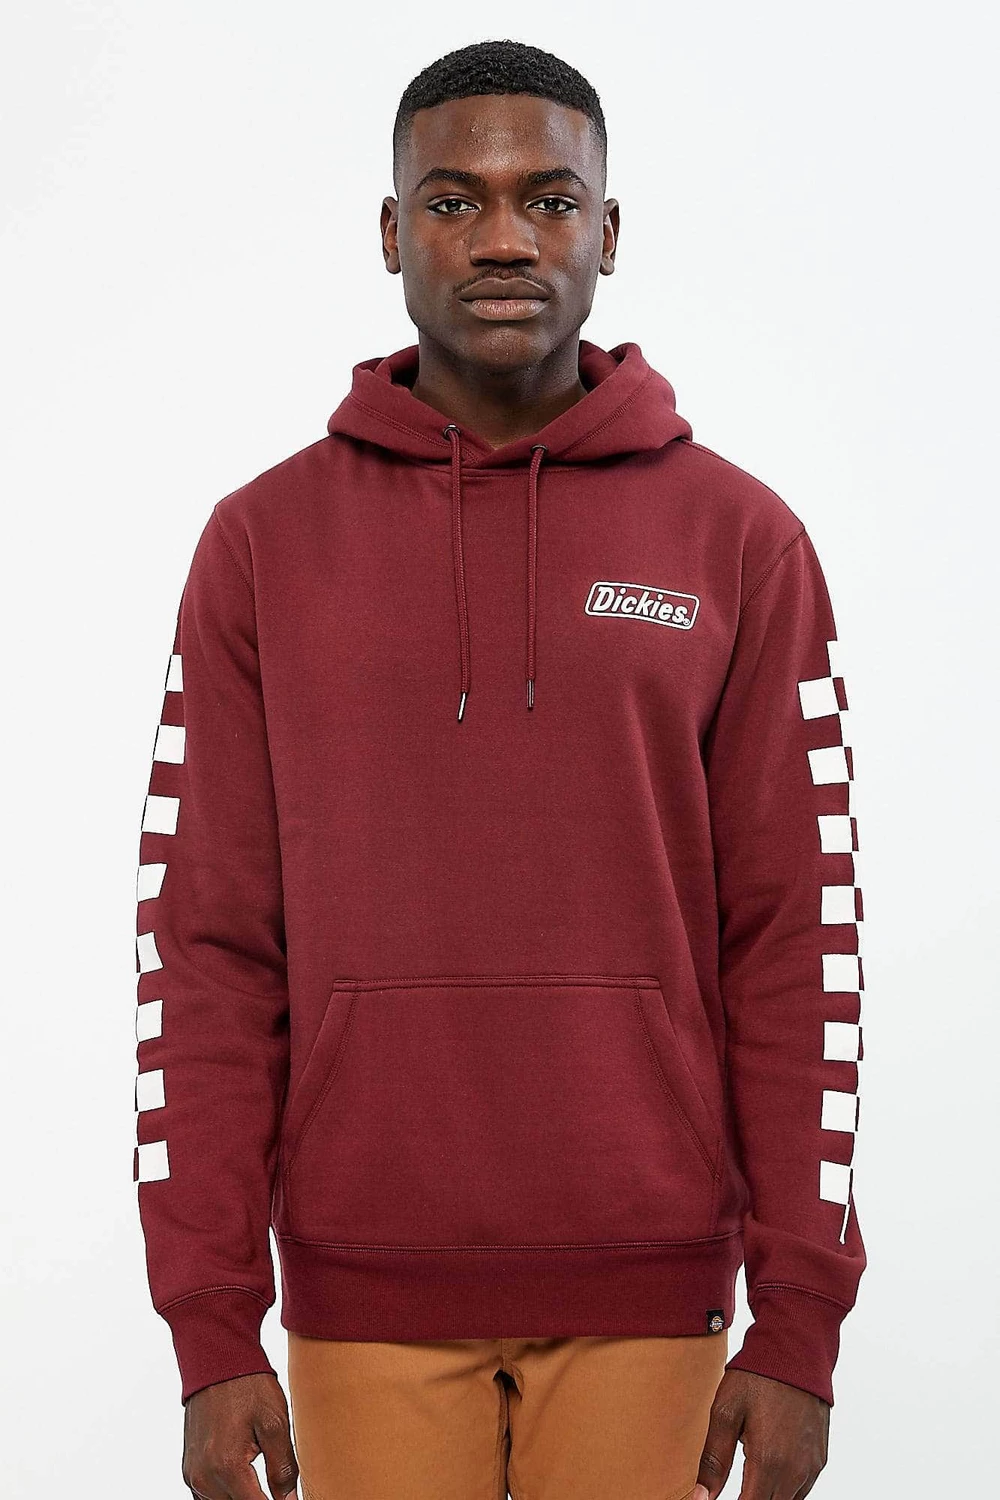 Mens Dickies Checkered Spiral Popover Hoodie Bluenotes Hoodies Hoodies Shop Dickies [ 1500 x 1000 Pixel ]